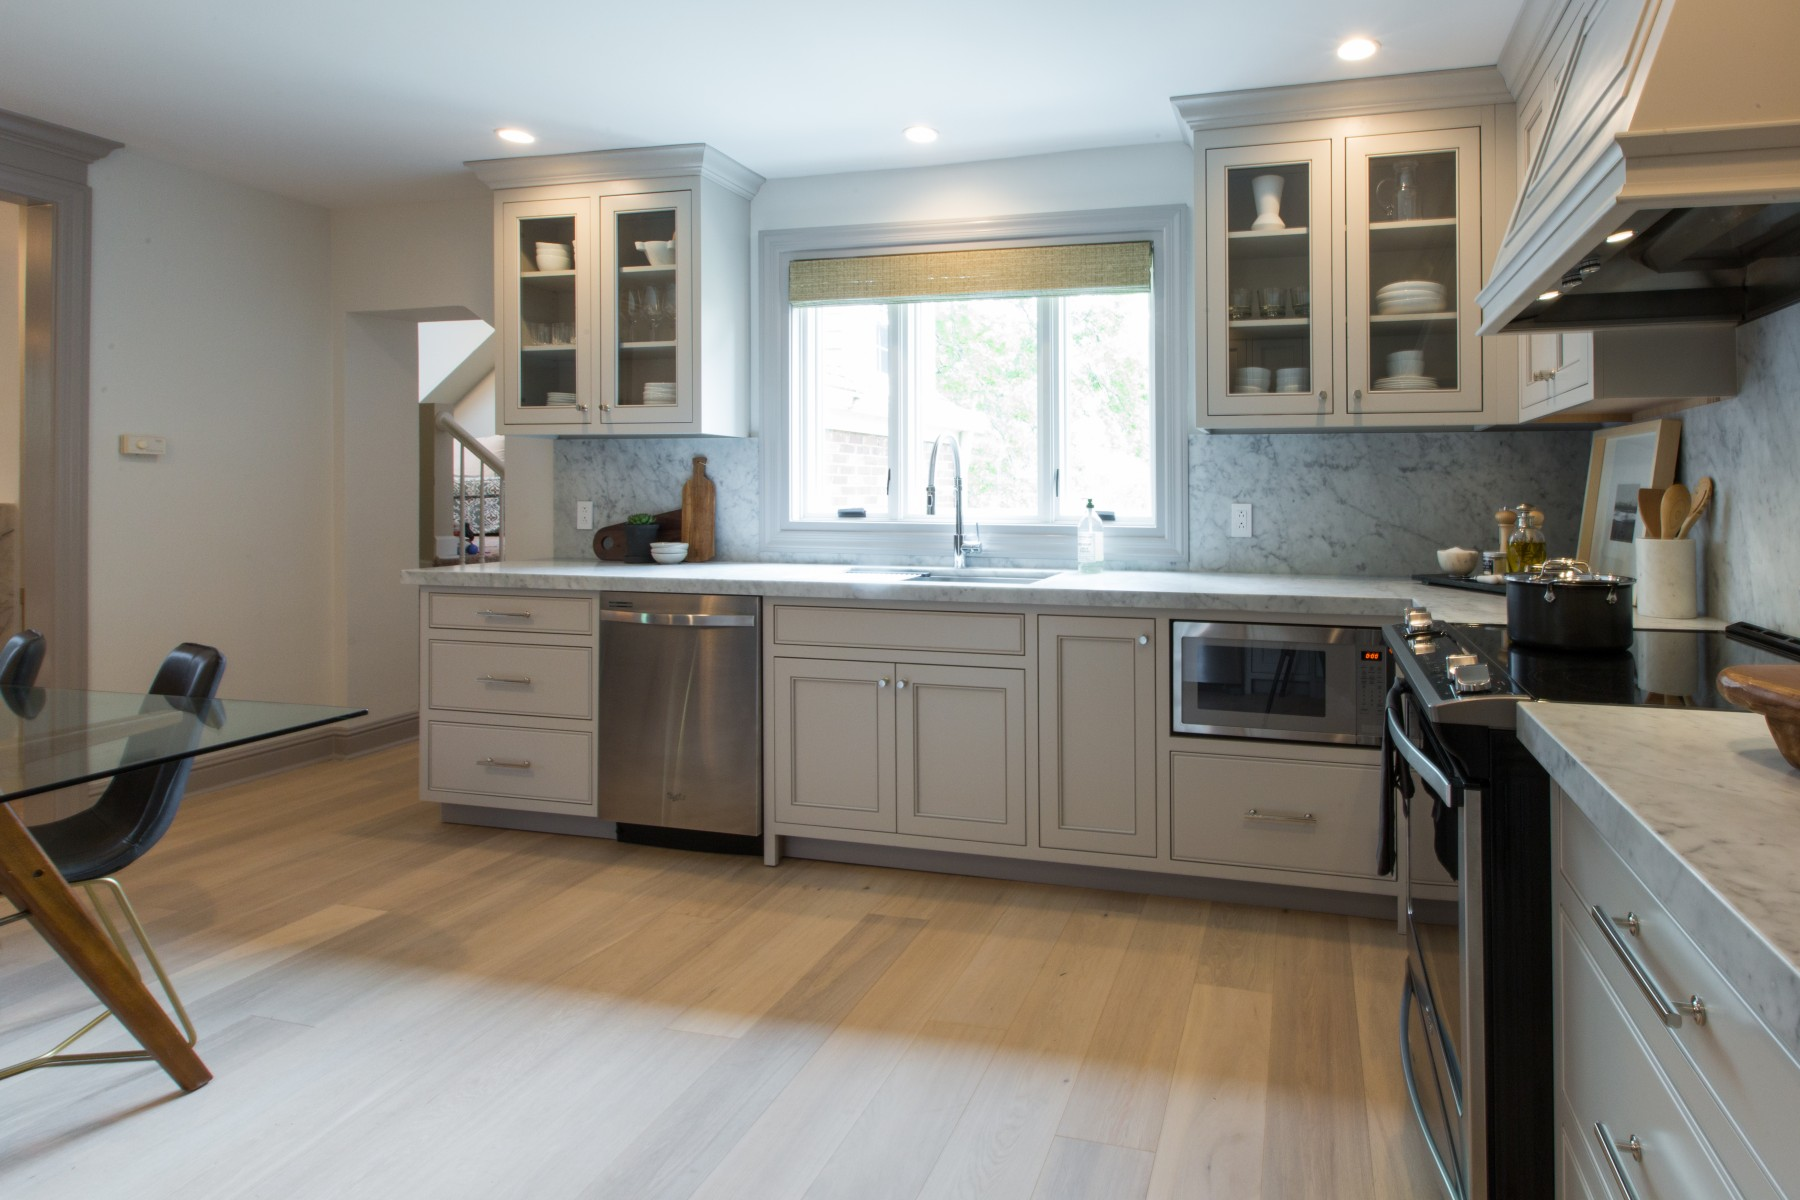 Property Brothers Kitchen featuring Architect Series Casement Windows